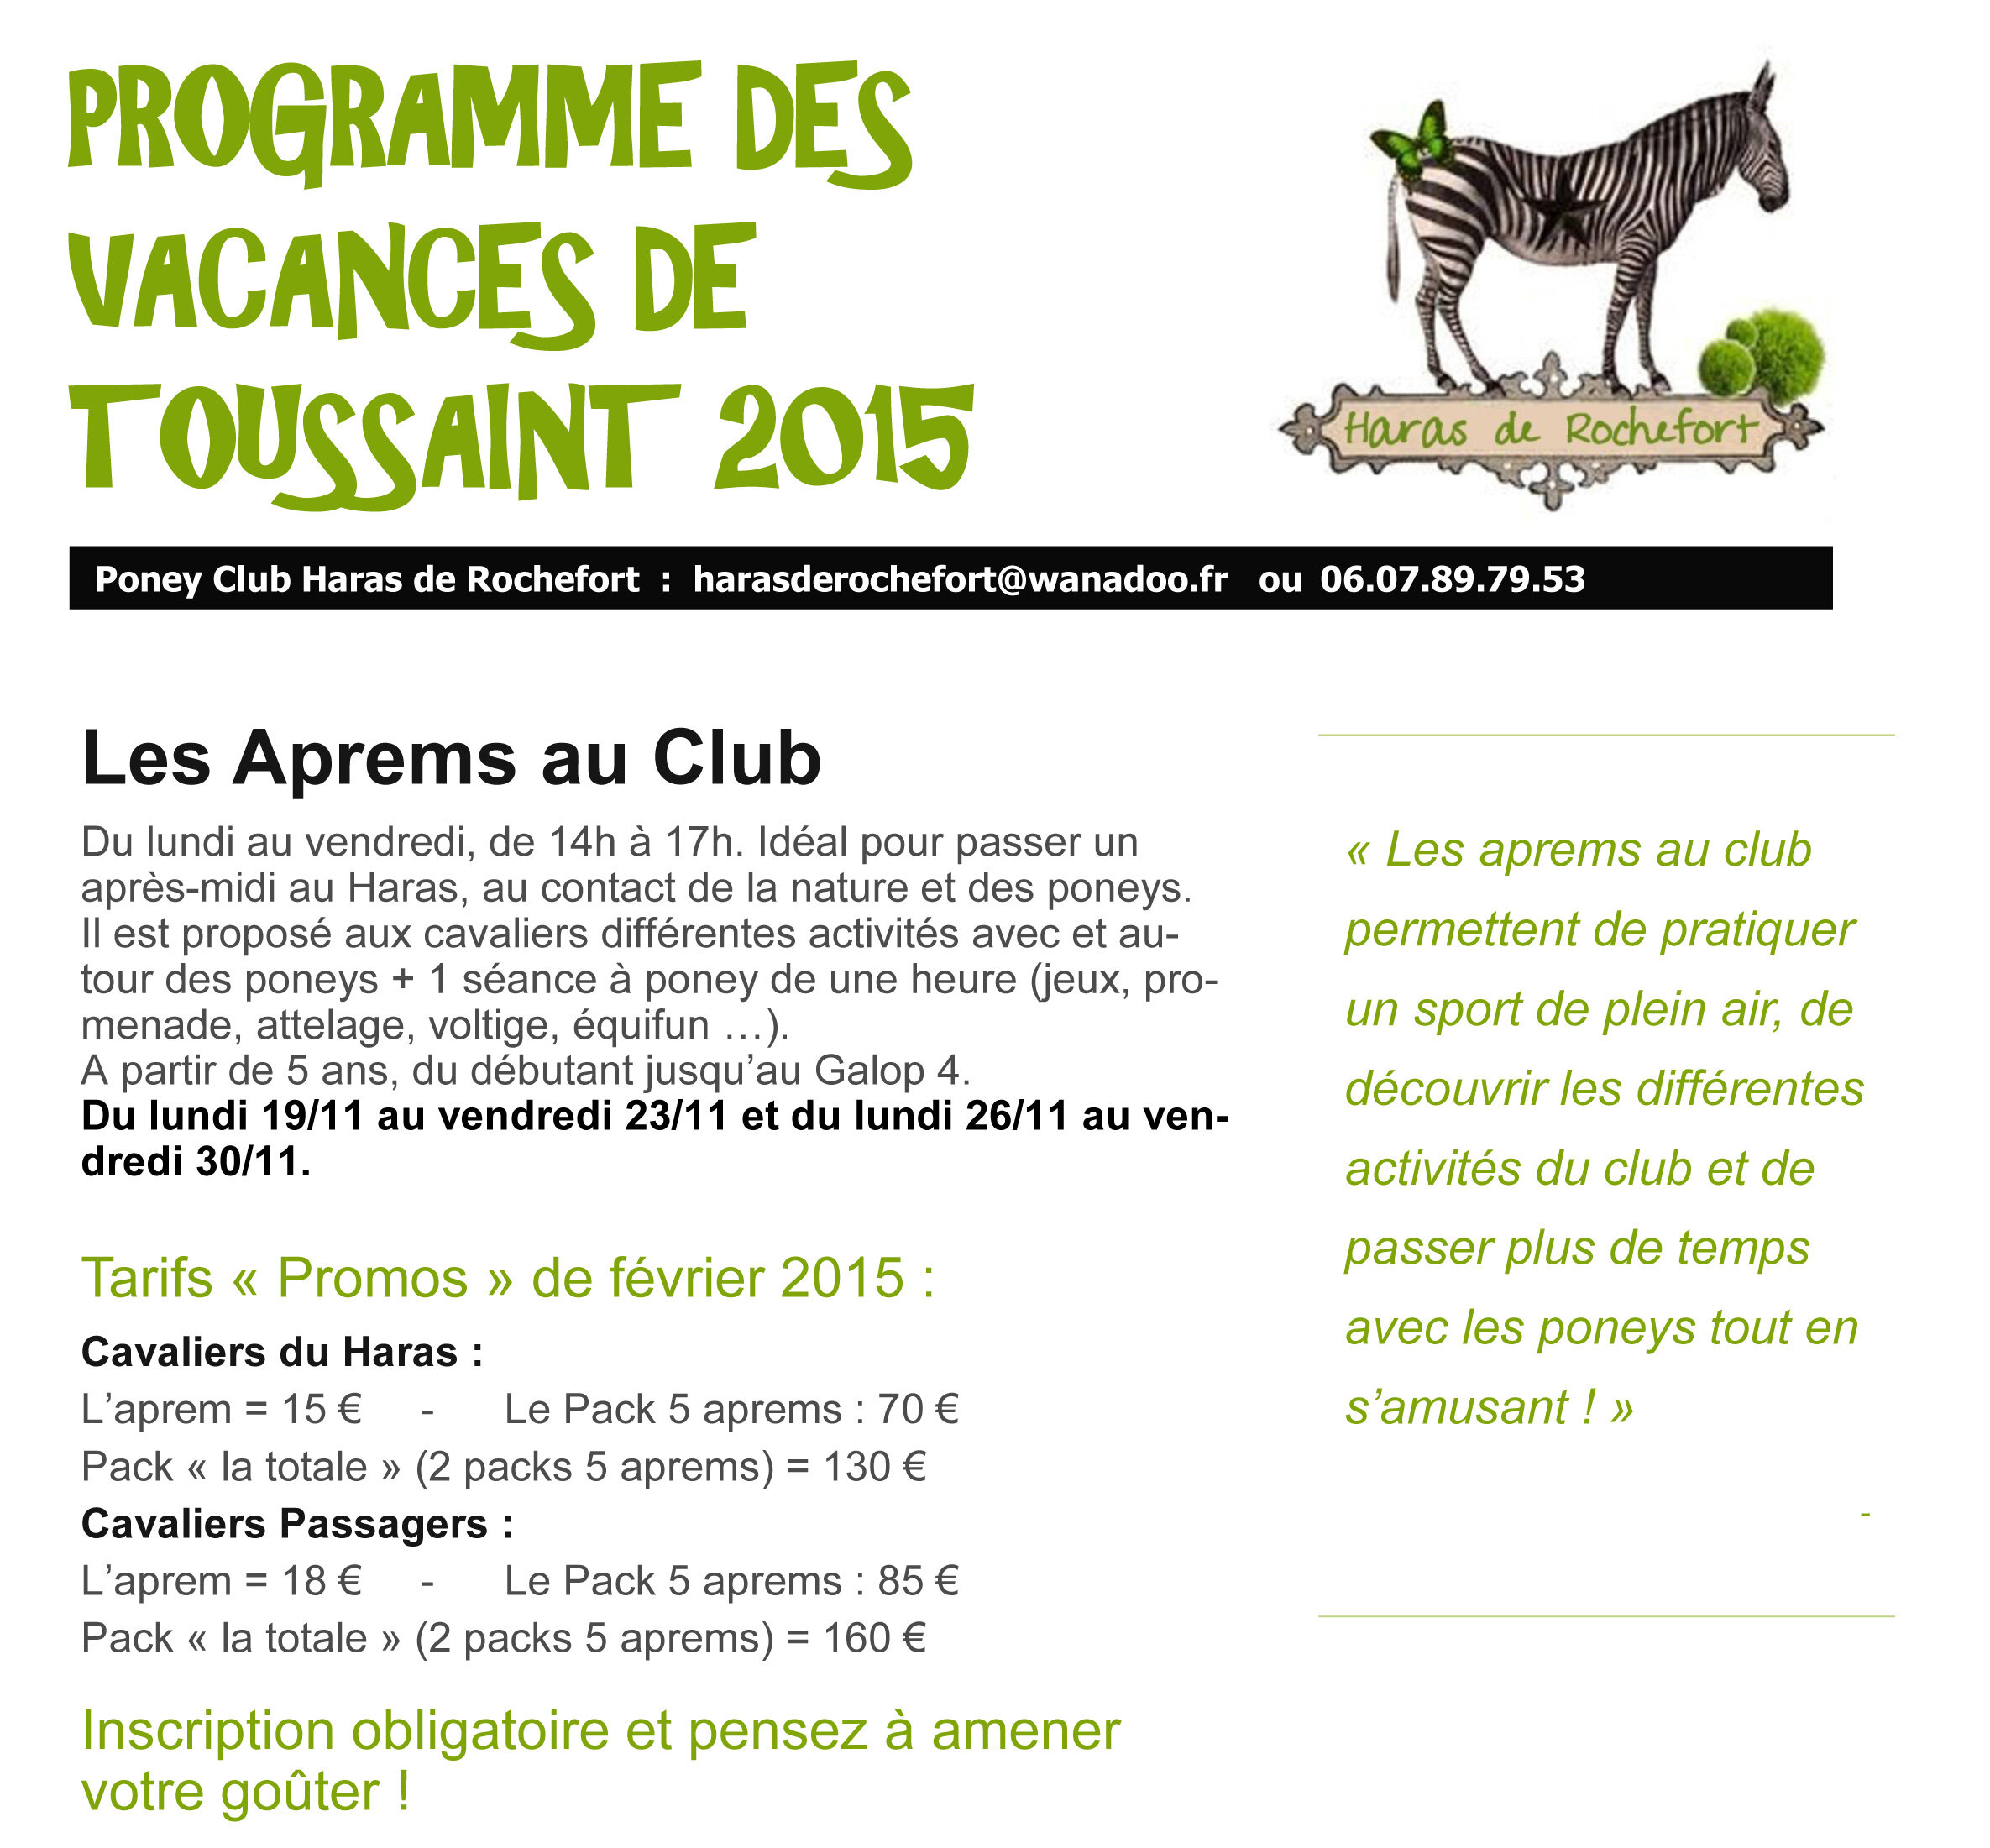 programme des vacances de toussaint 2015 haras de rochefort. Black Bedroom Furniture Sets. Home Design Ideas